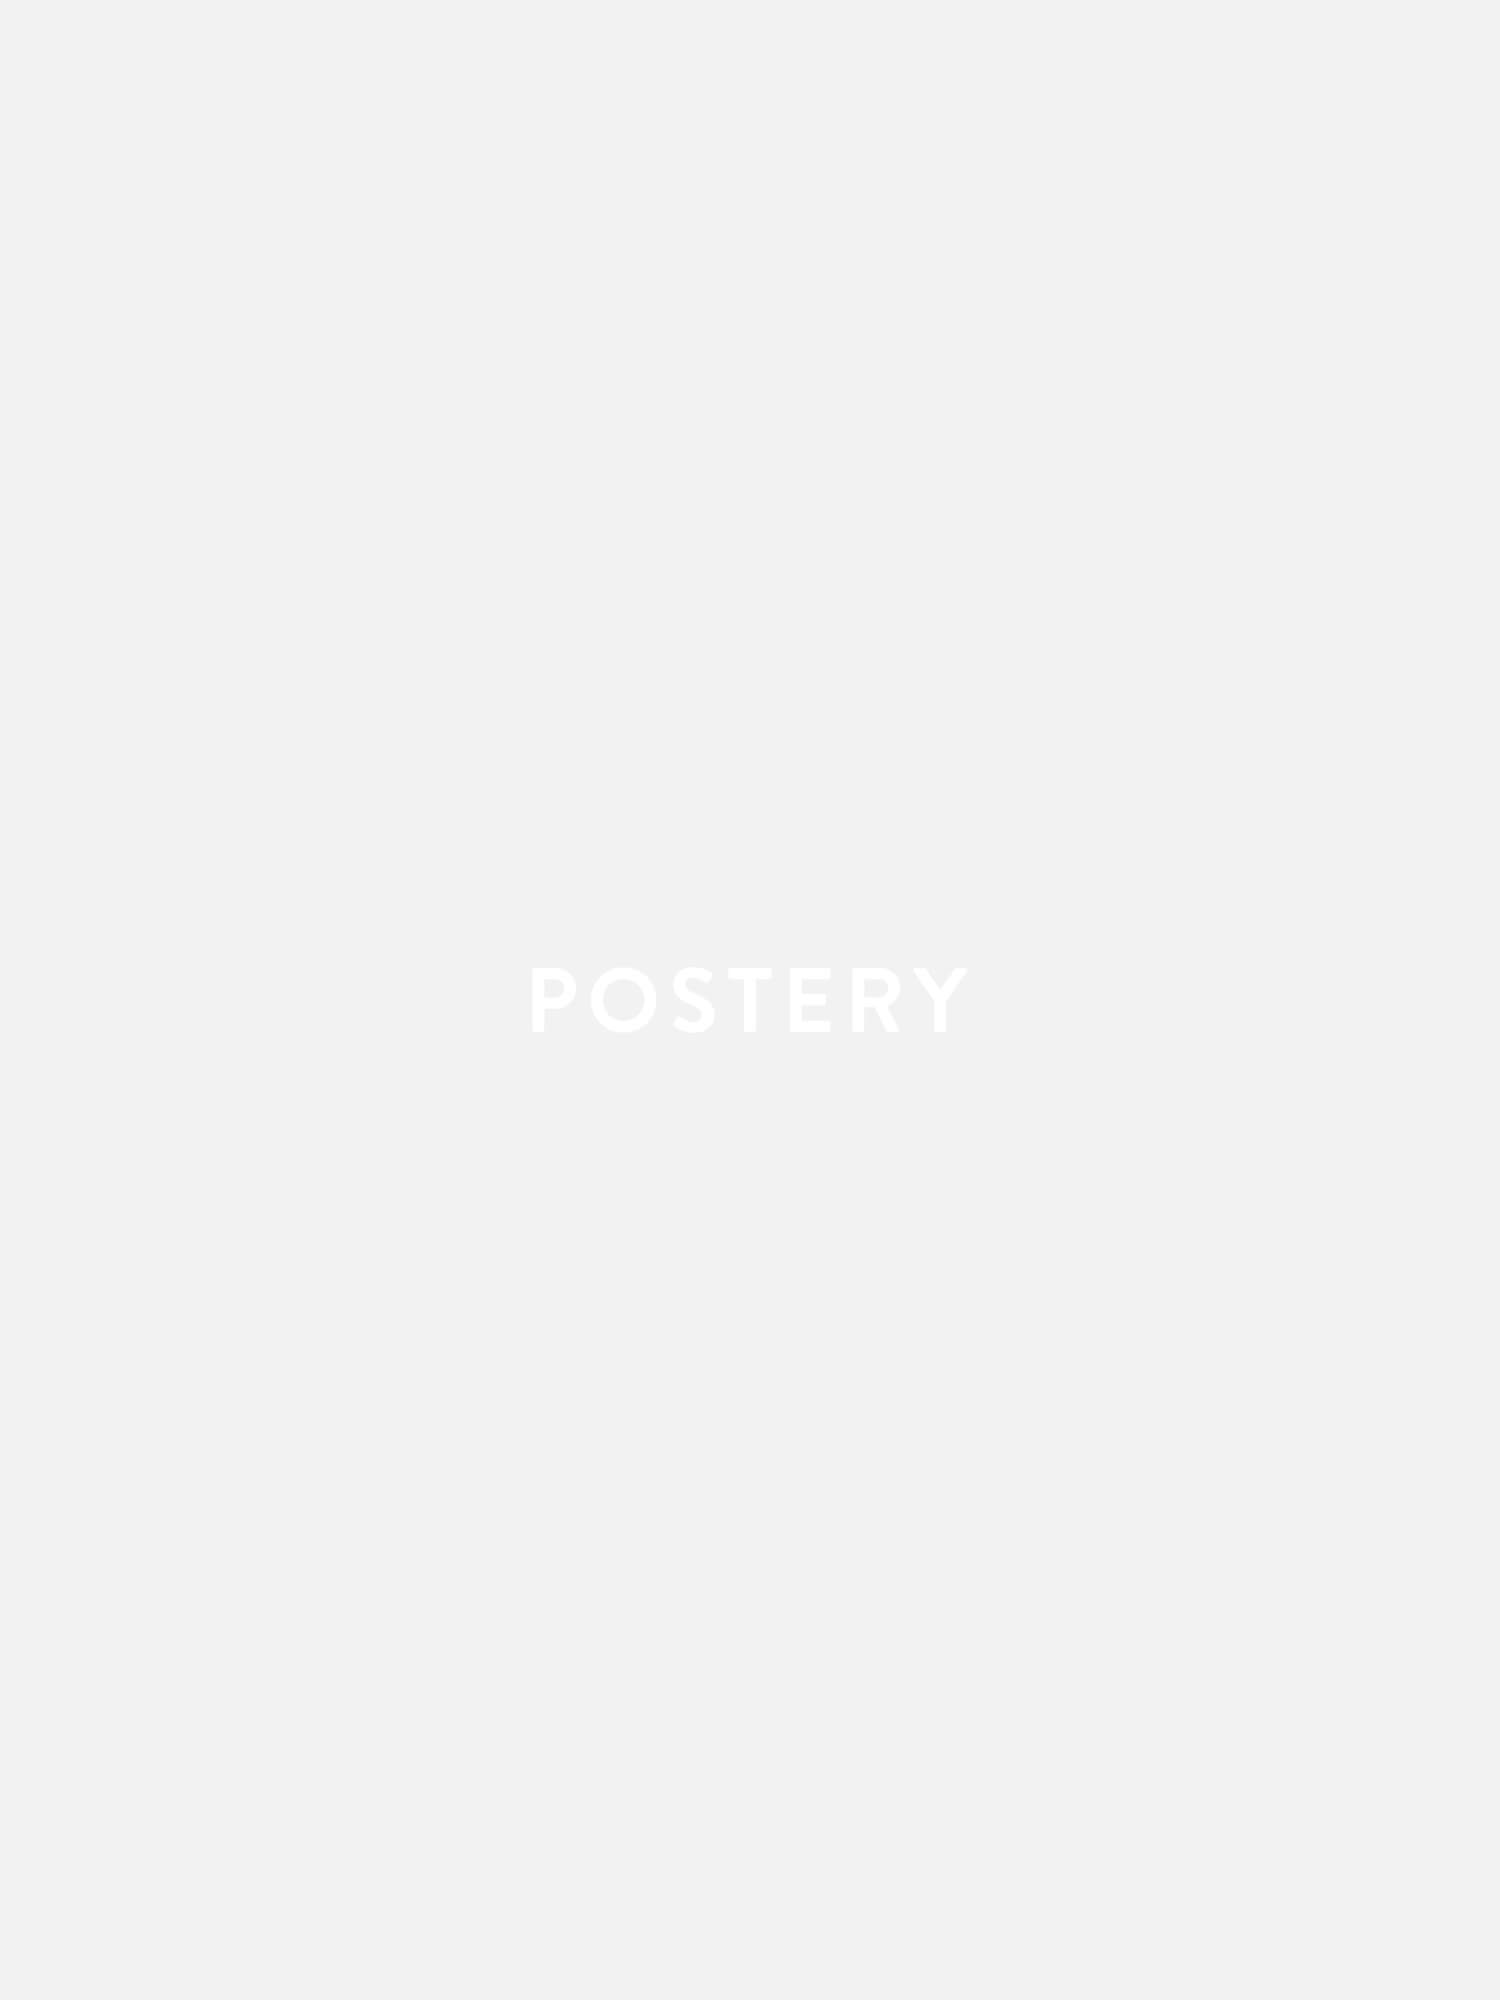 Gallery Wall #6986